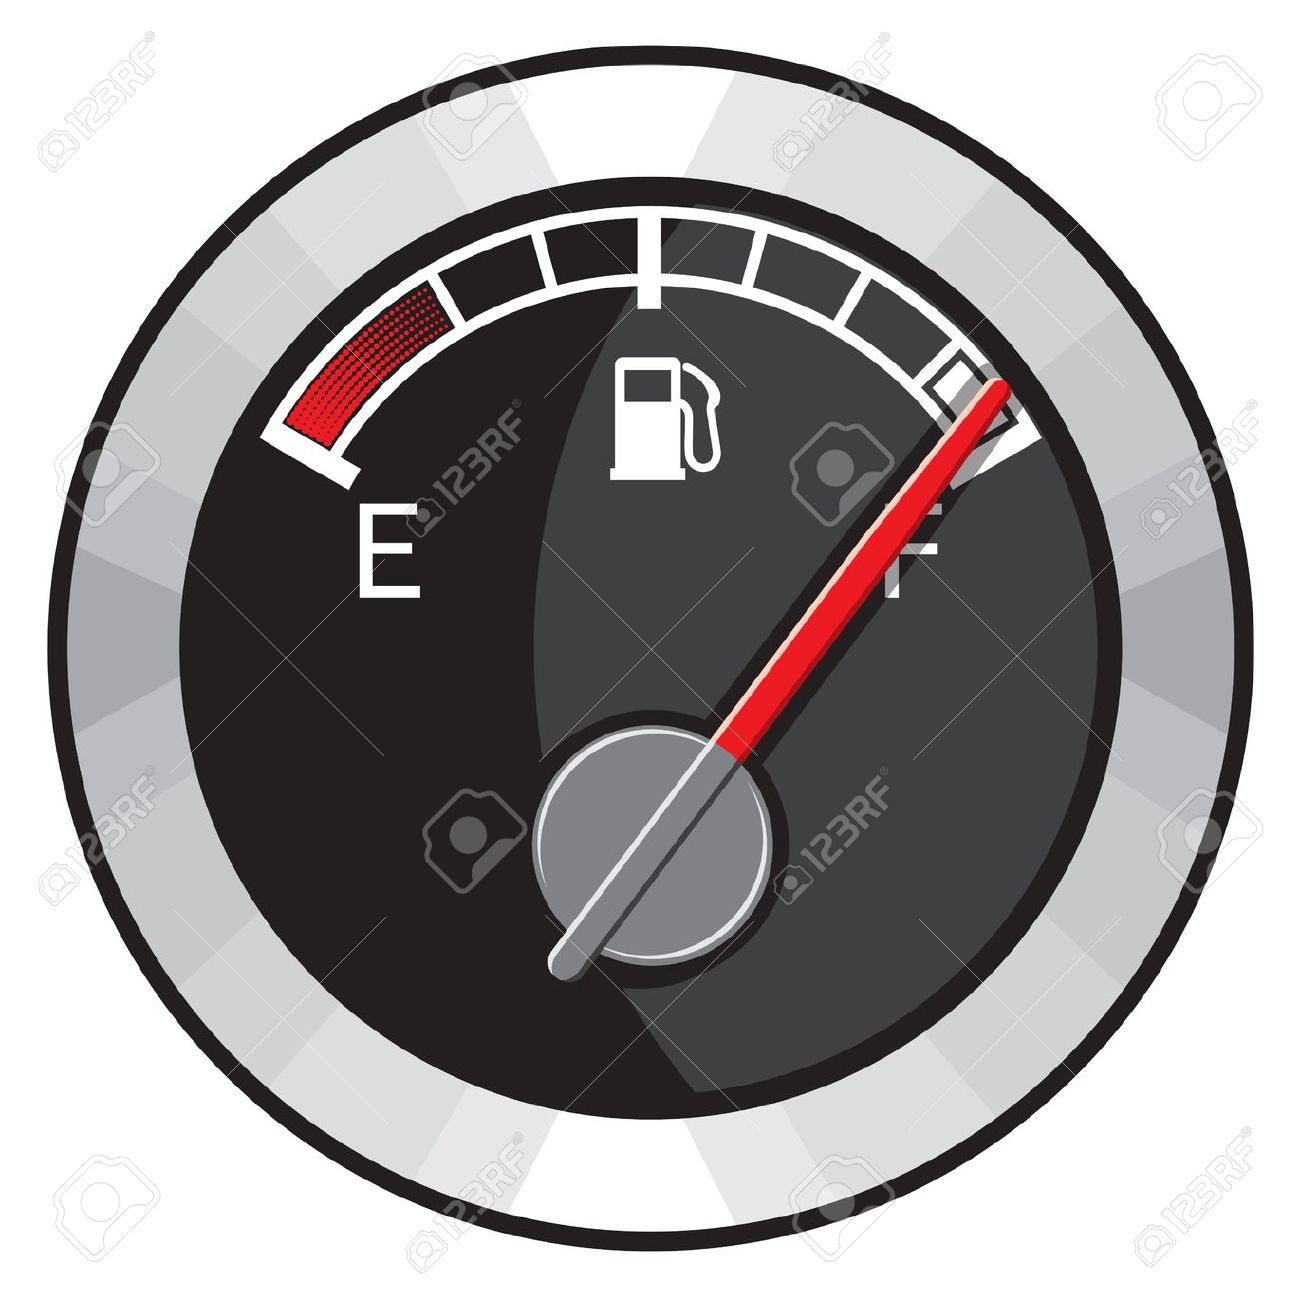 Full Gas Tank Royalty Free Cliparts, Vectors, And Stock.